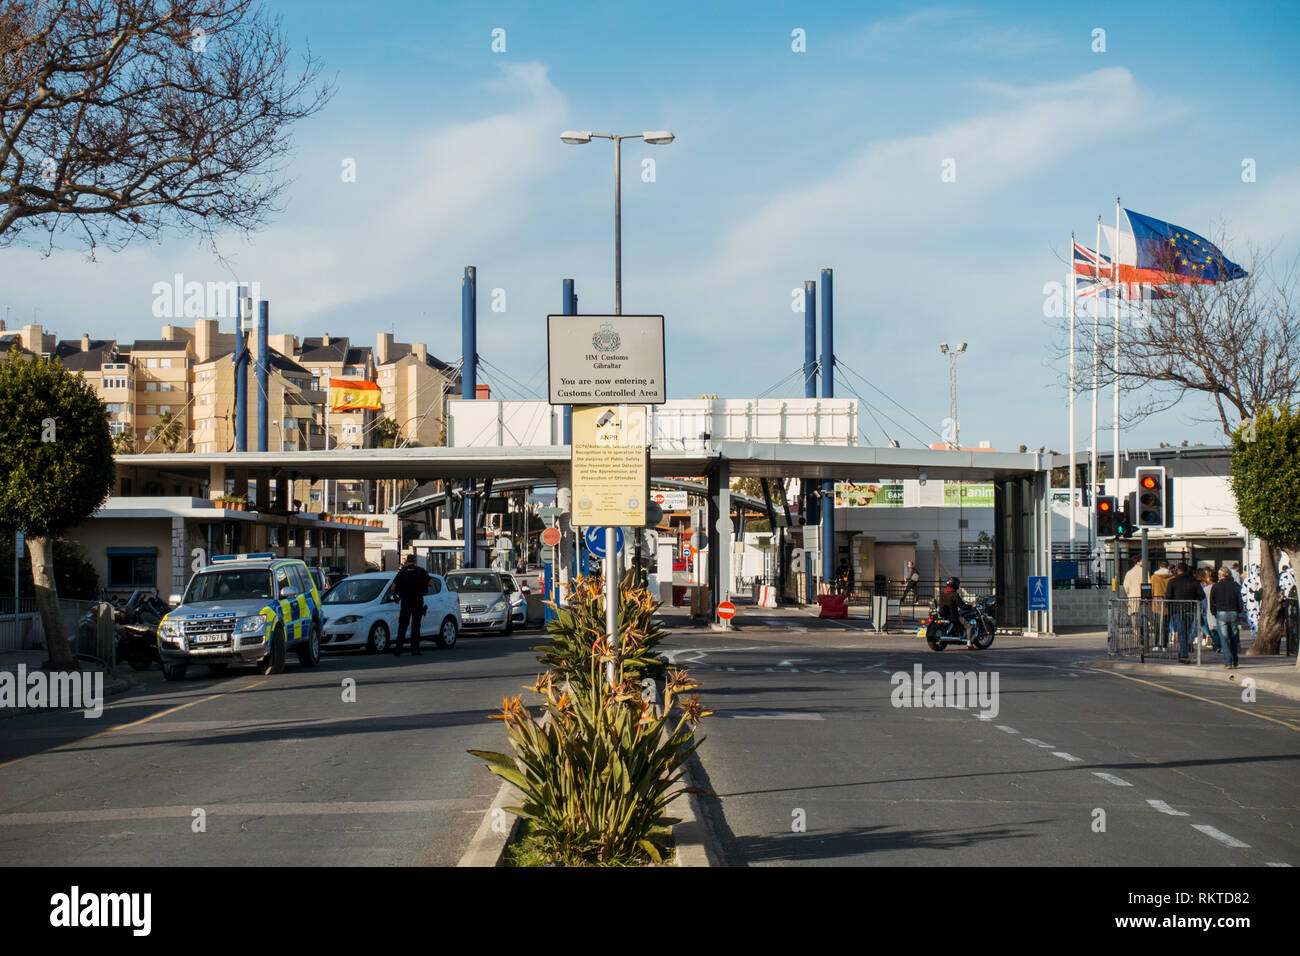 The border crossing between Spain and Gibraltar, as seen from the Gibraltarian side entering Spain - Stock Image